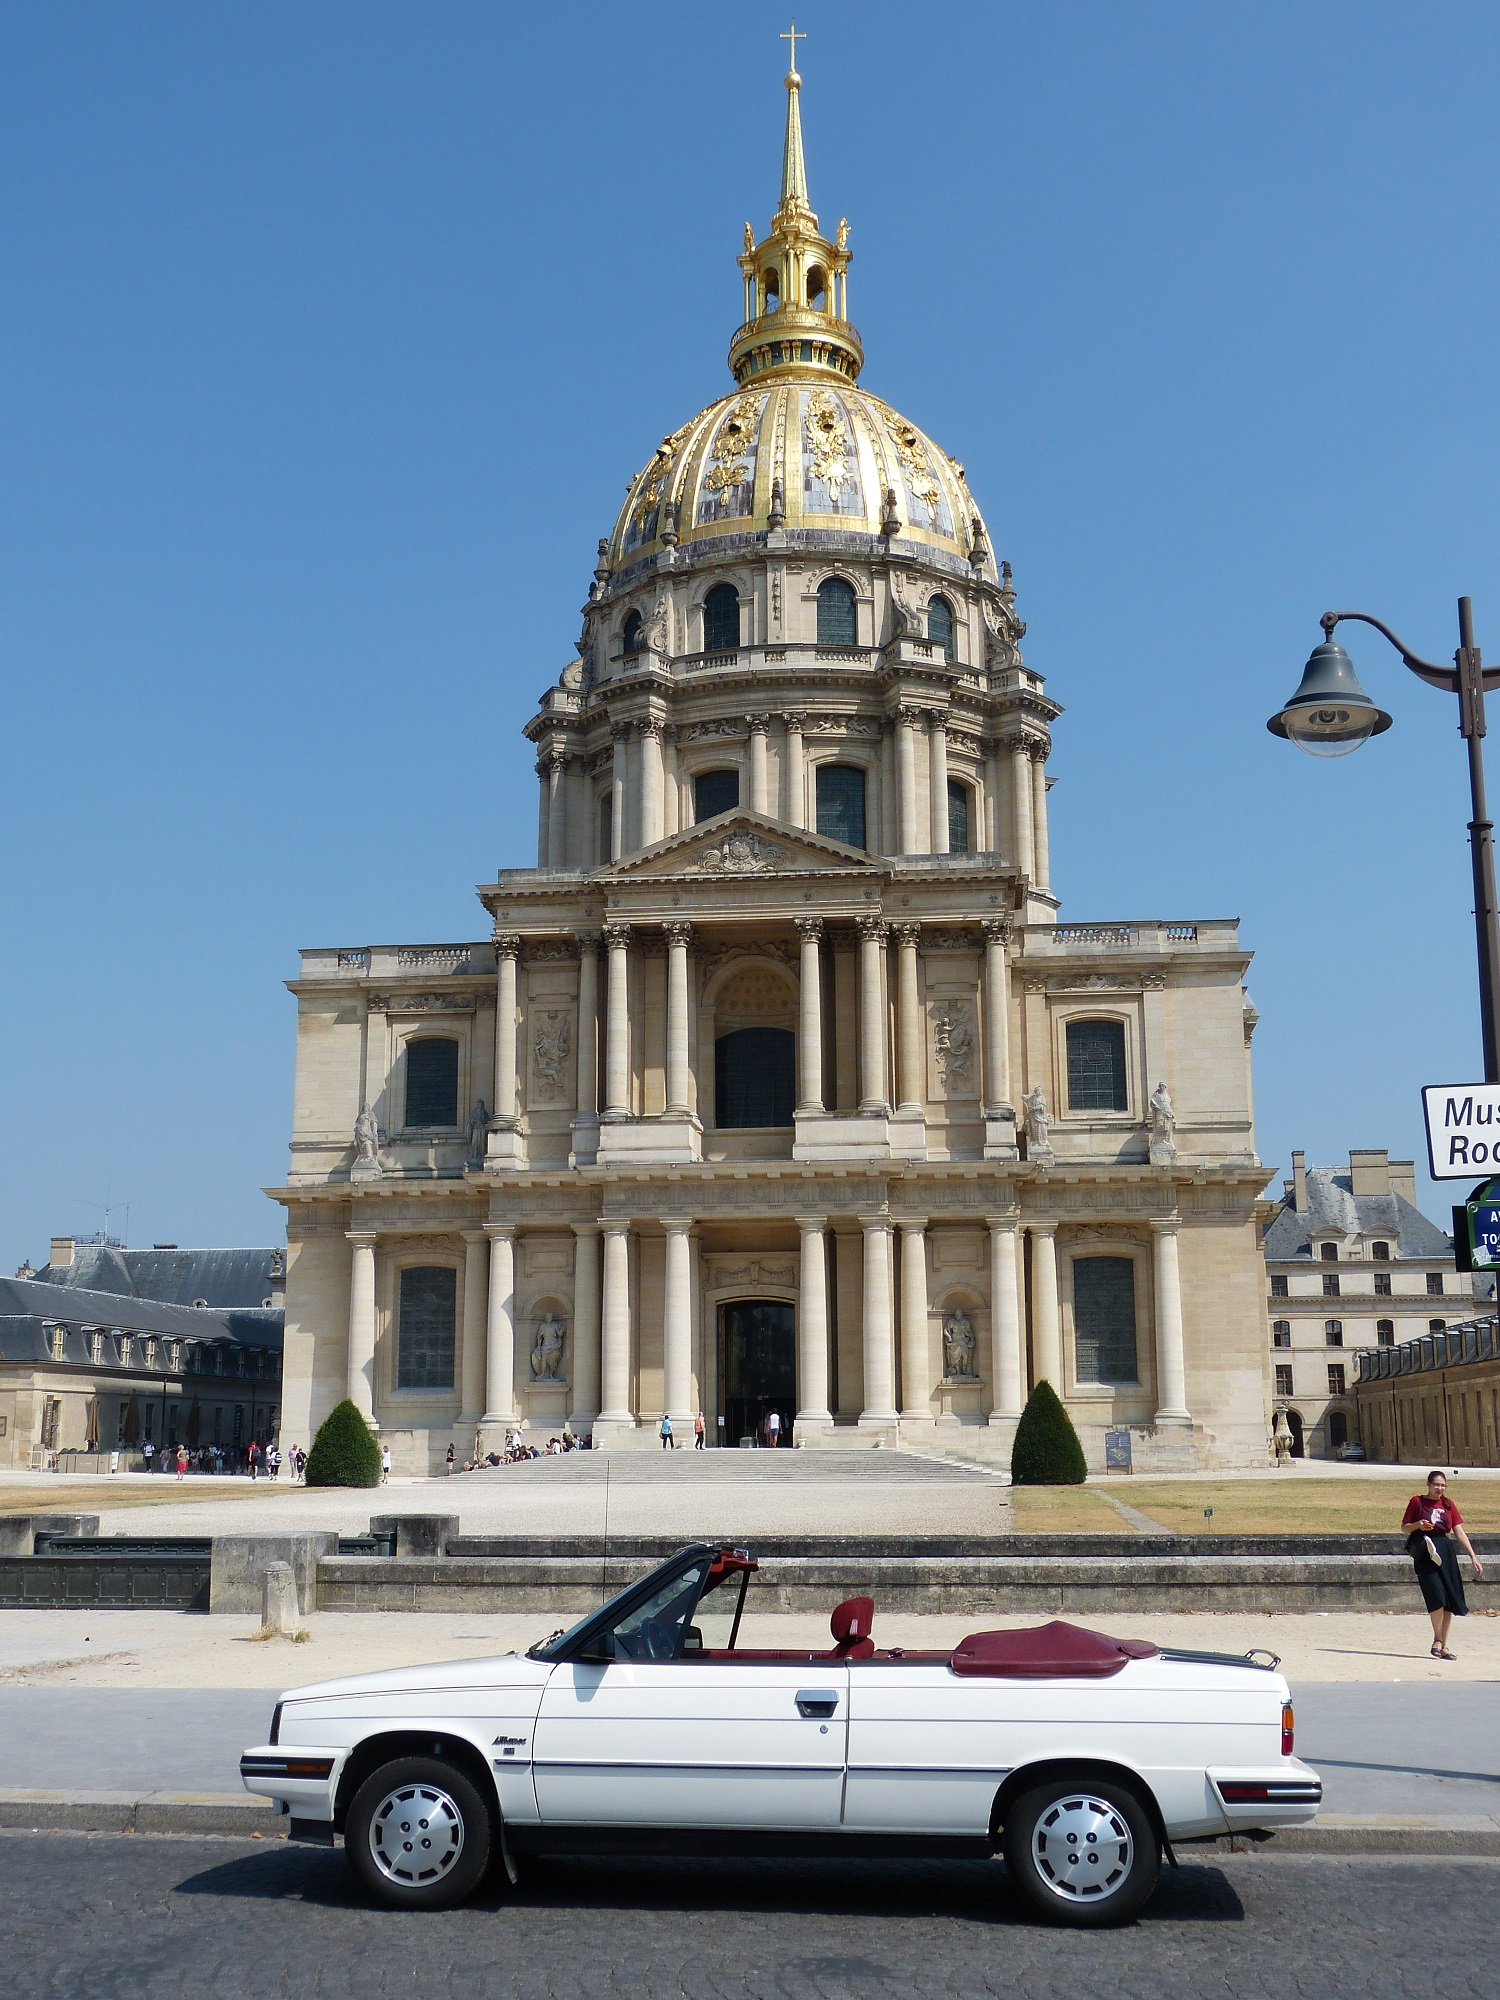 https://forum.lesptitesrenault.fr/Files/PTR_Upload/uploadsFrom20180609/20180723103216-968591-invalides.png